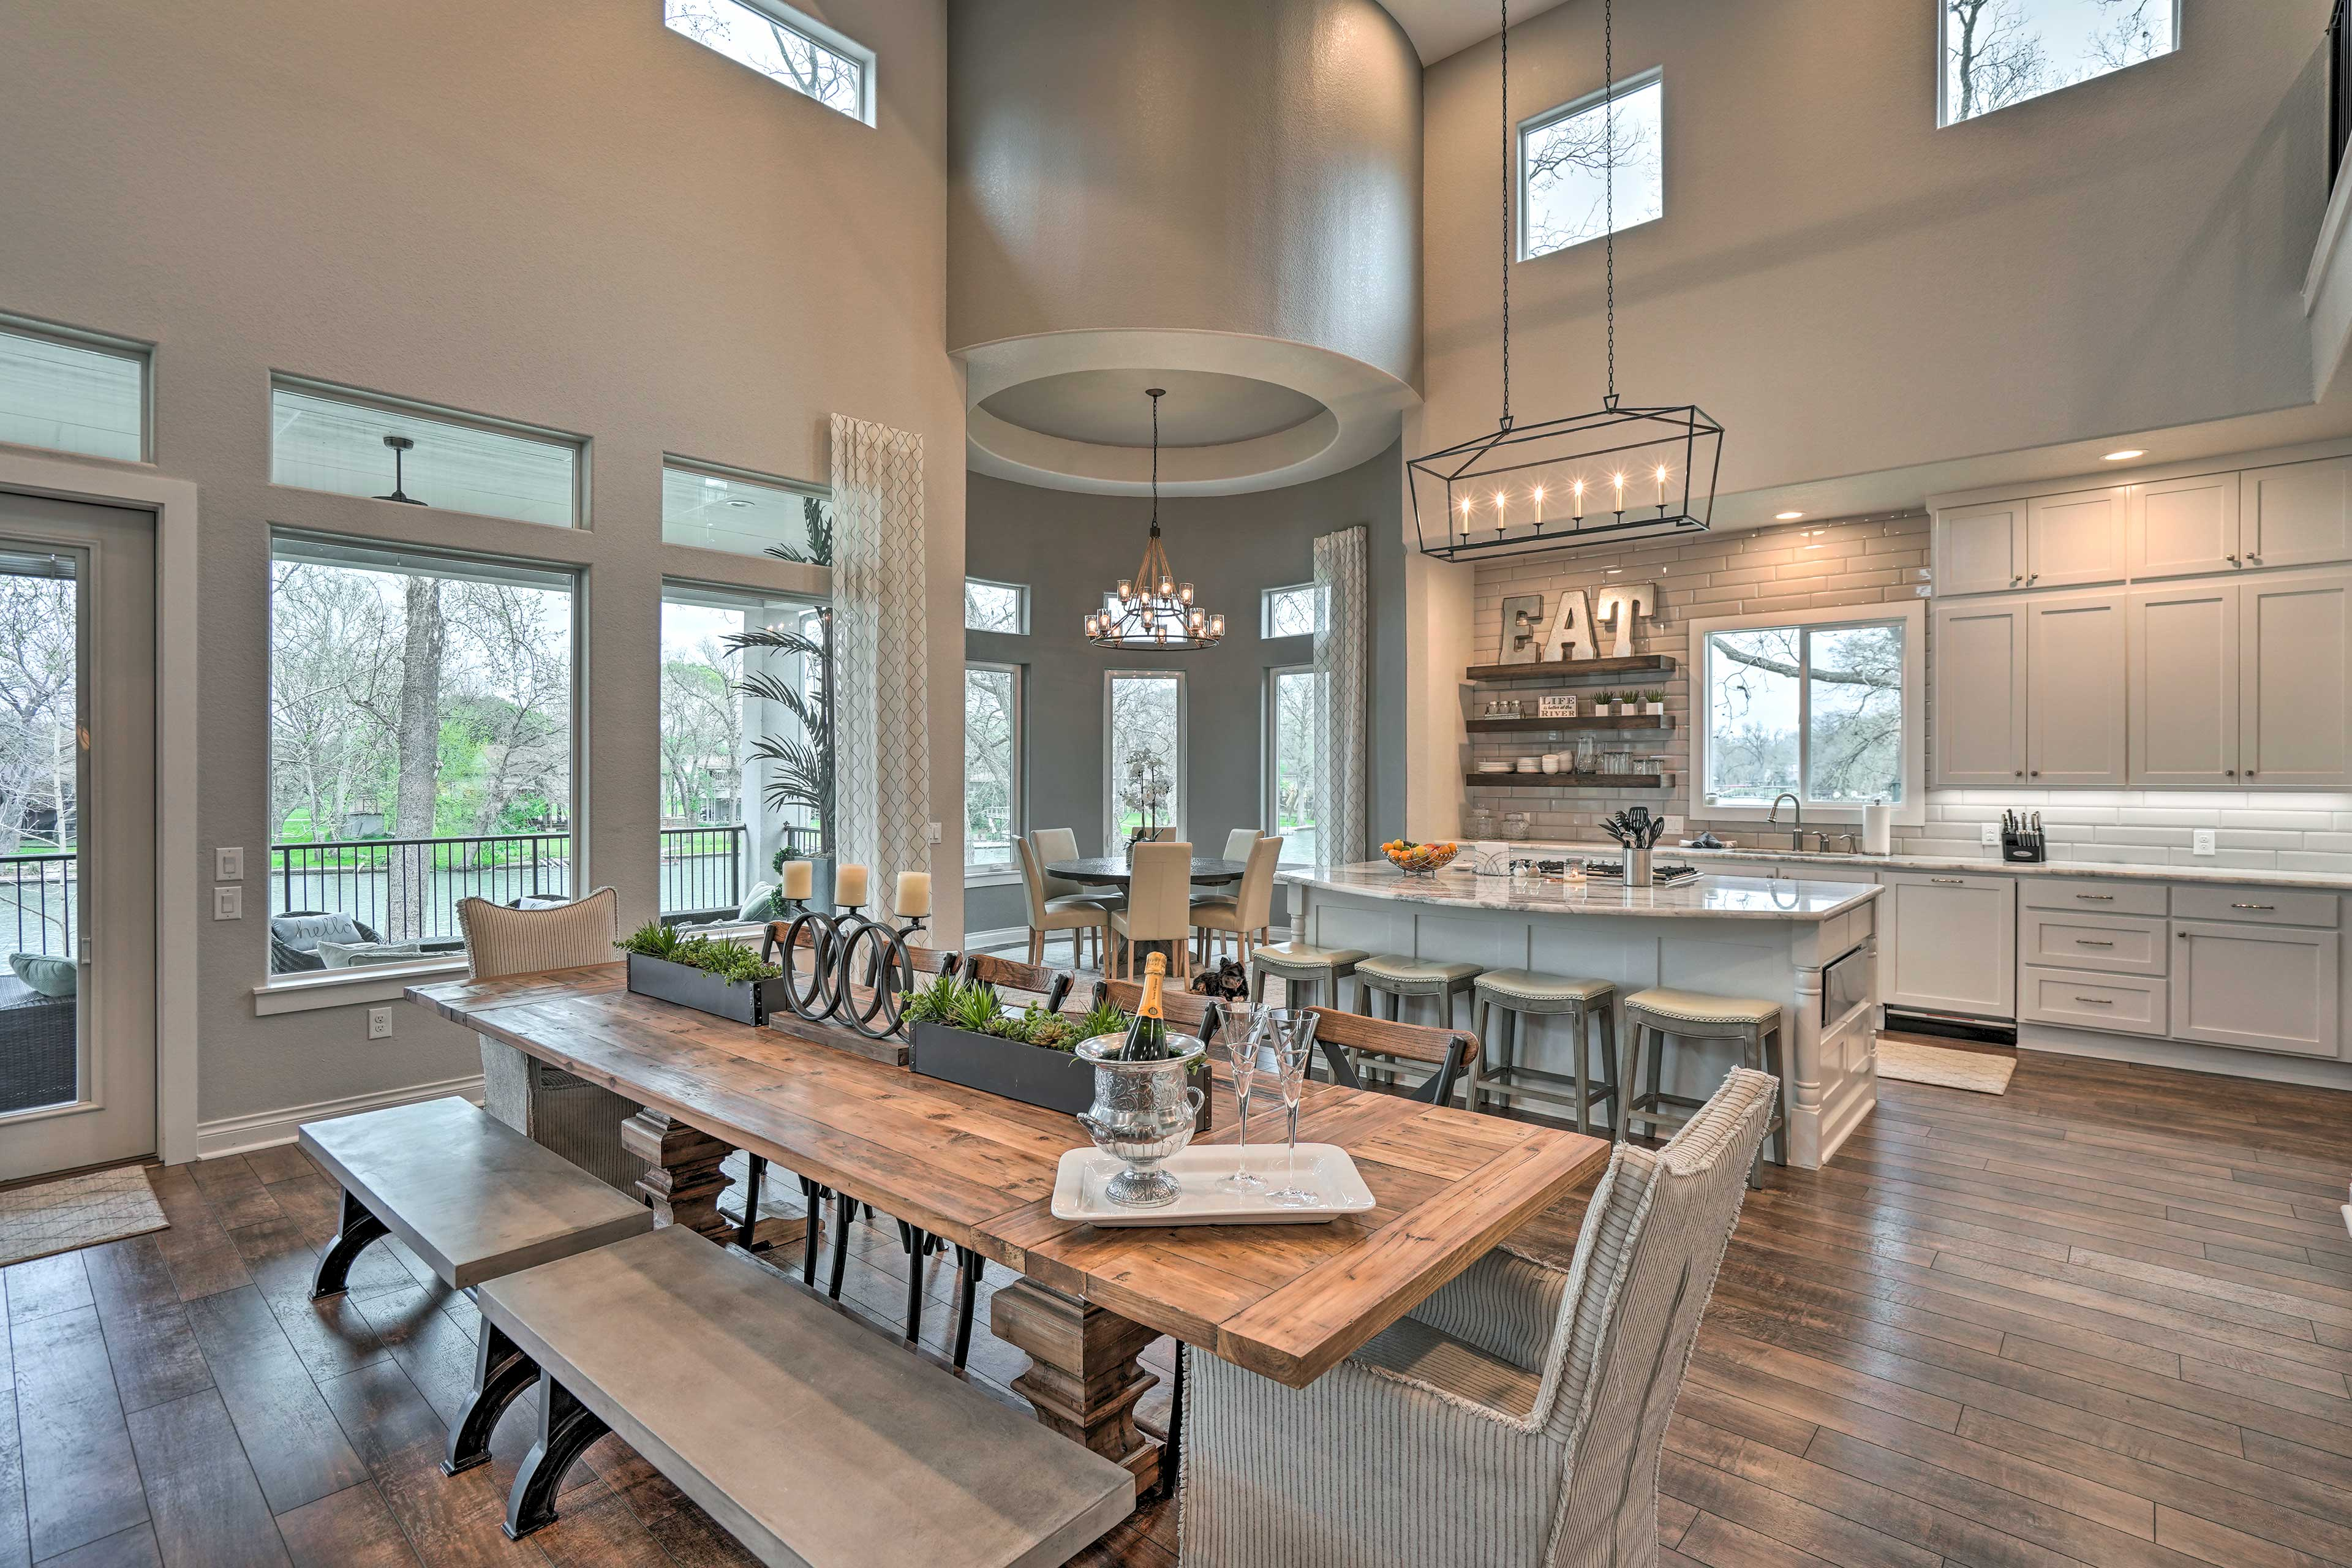 Gather around the large dining table to savor home-cooked meals.